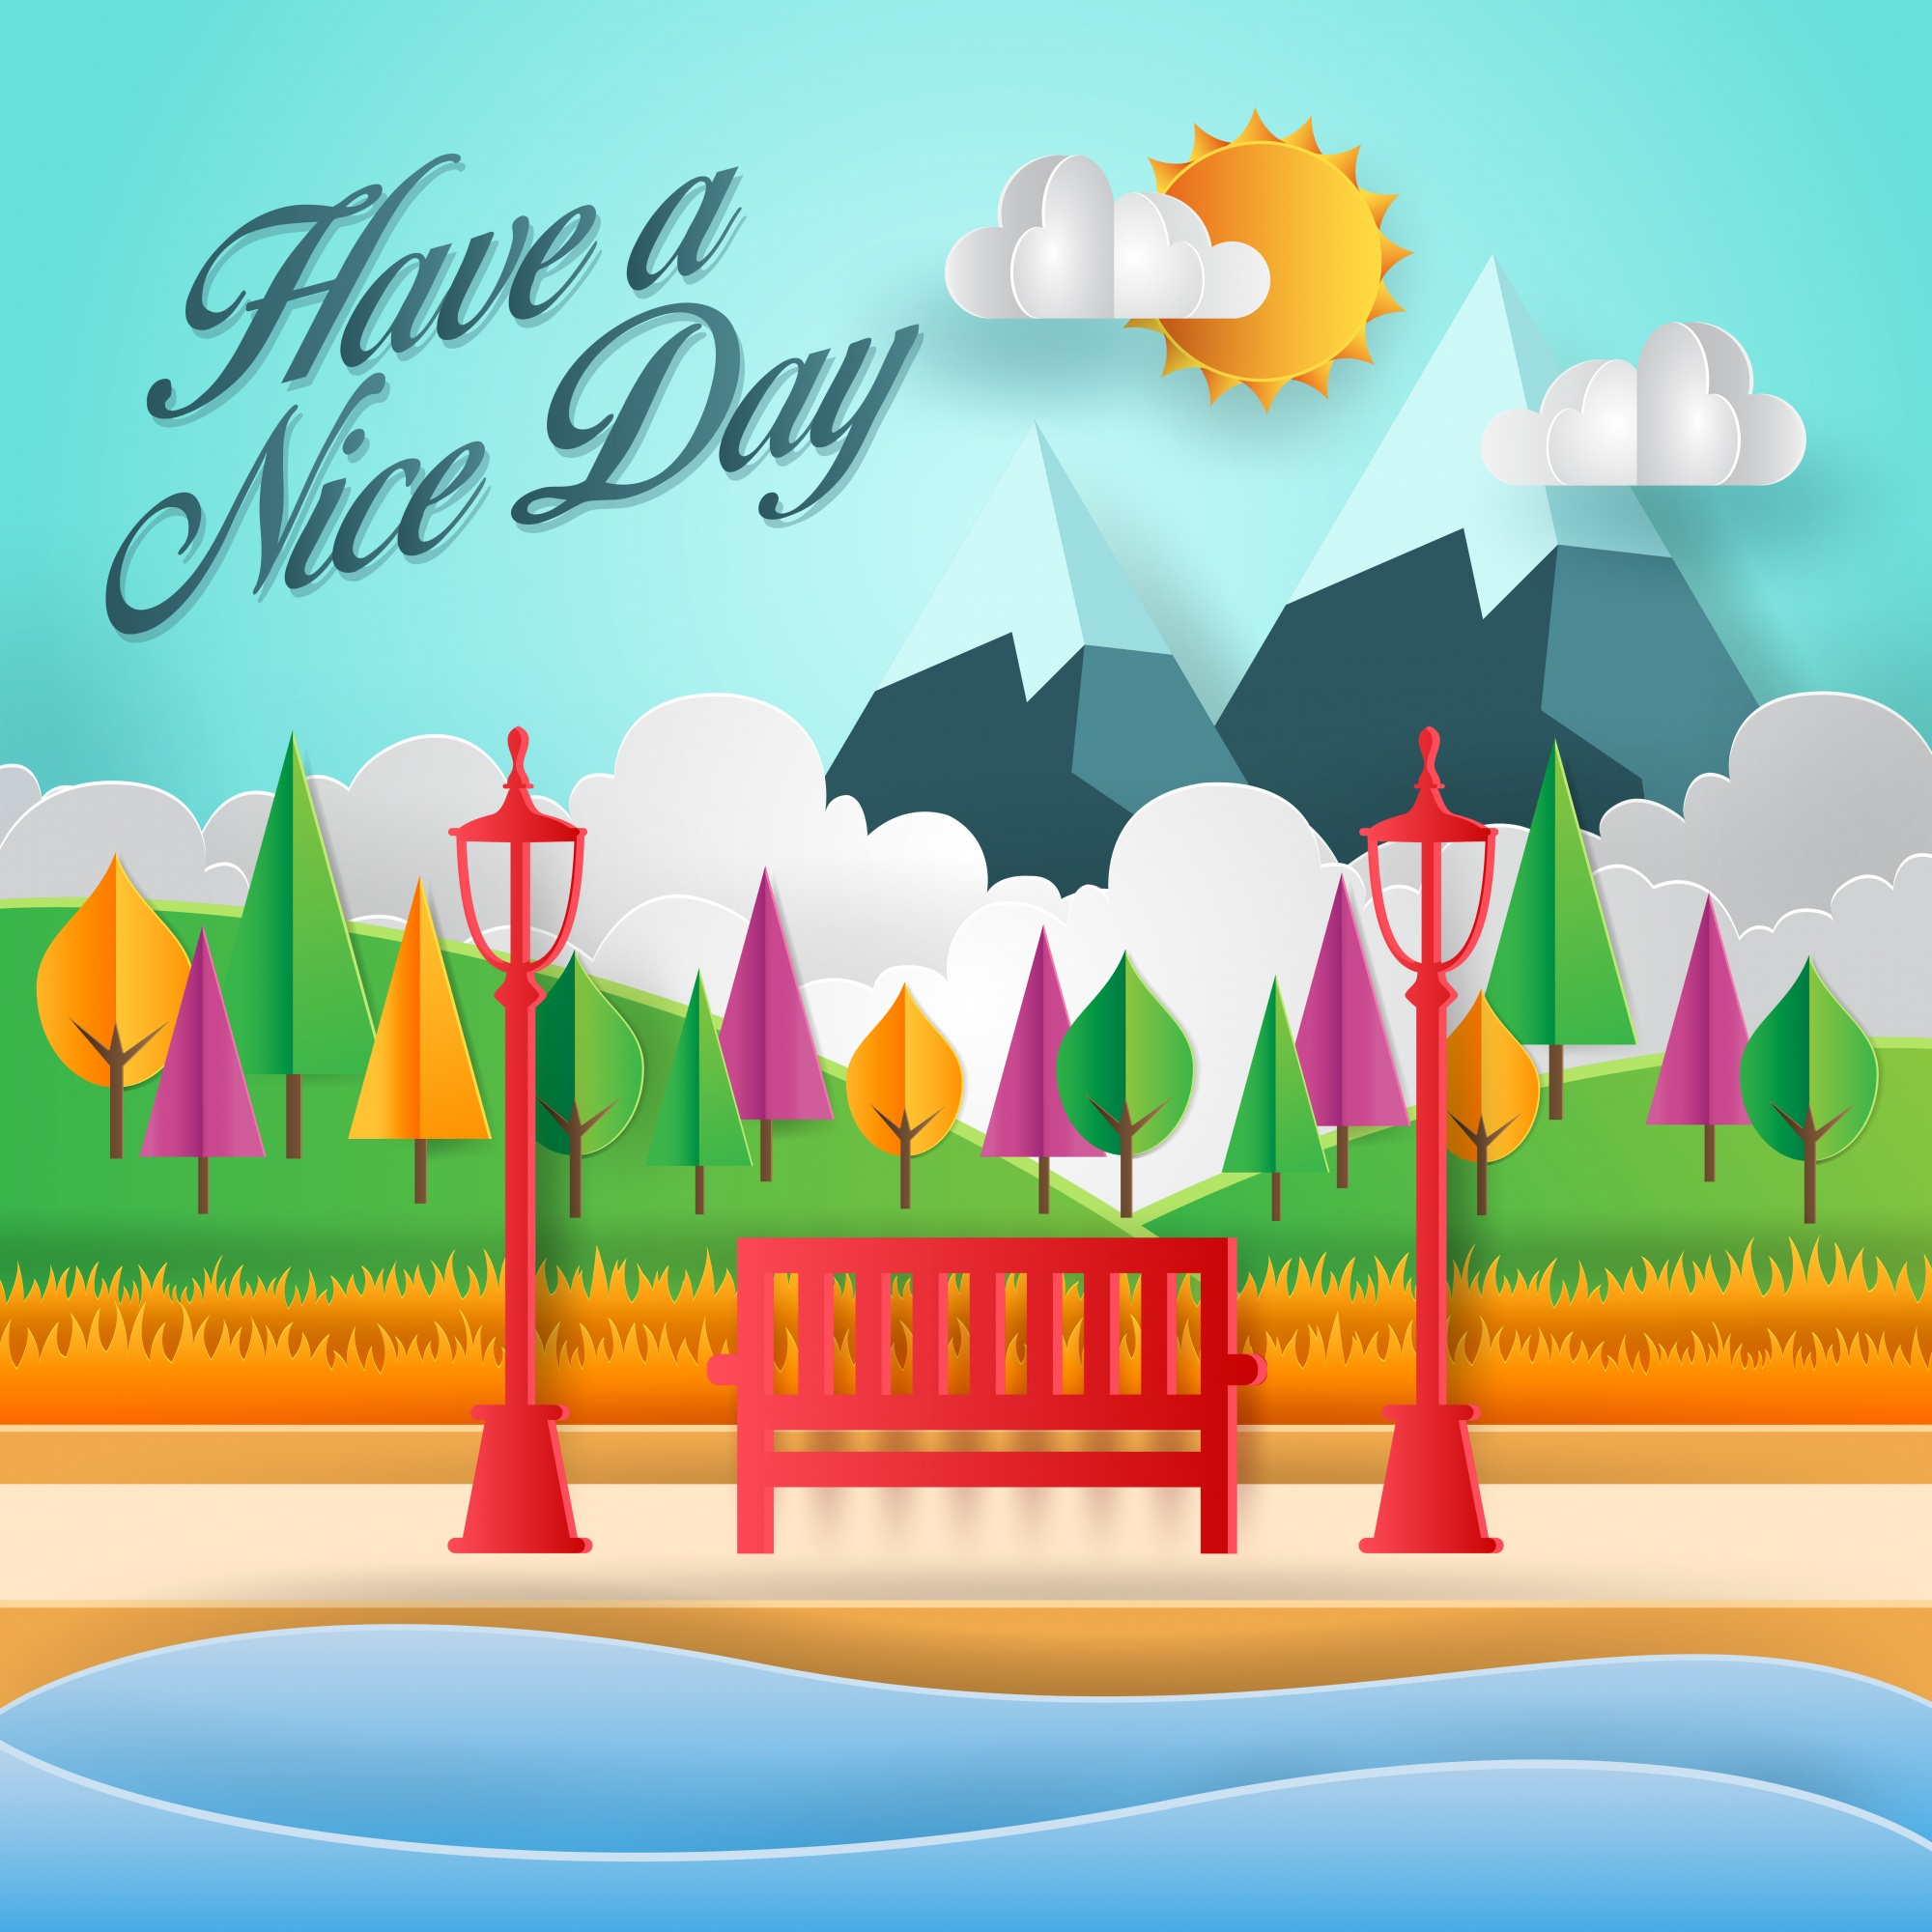 Have A Nice Day Paper Art Card Illustration